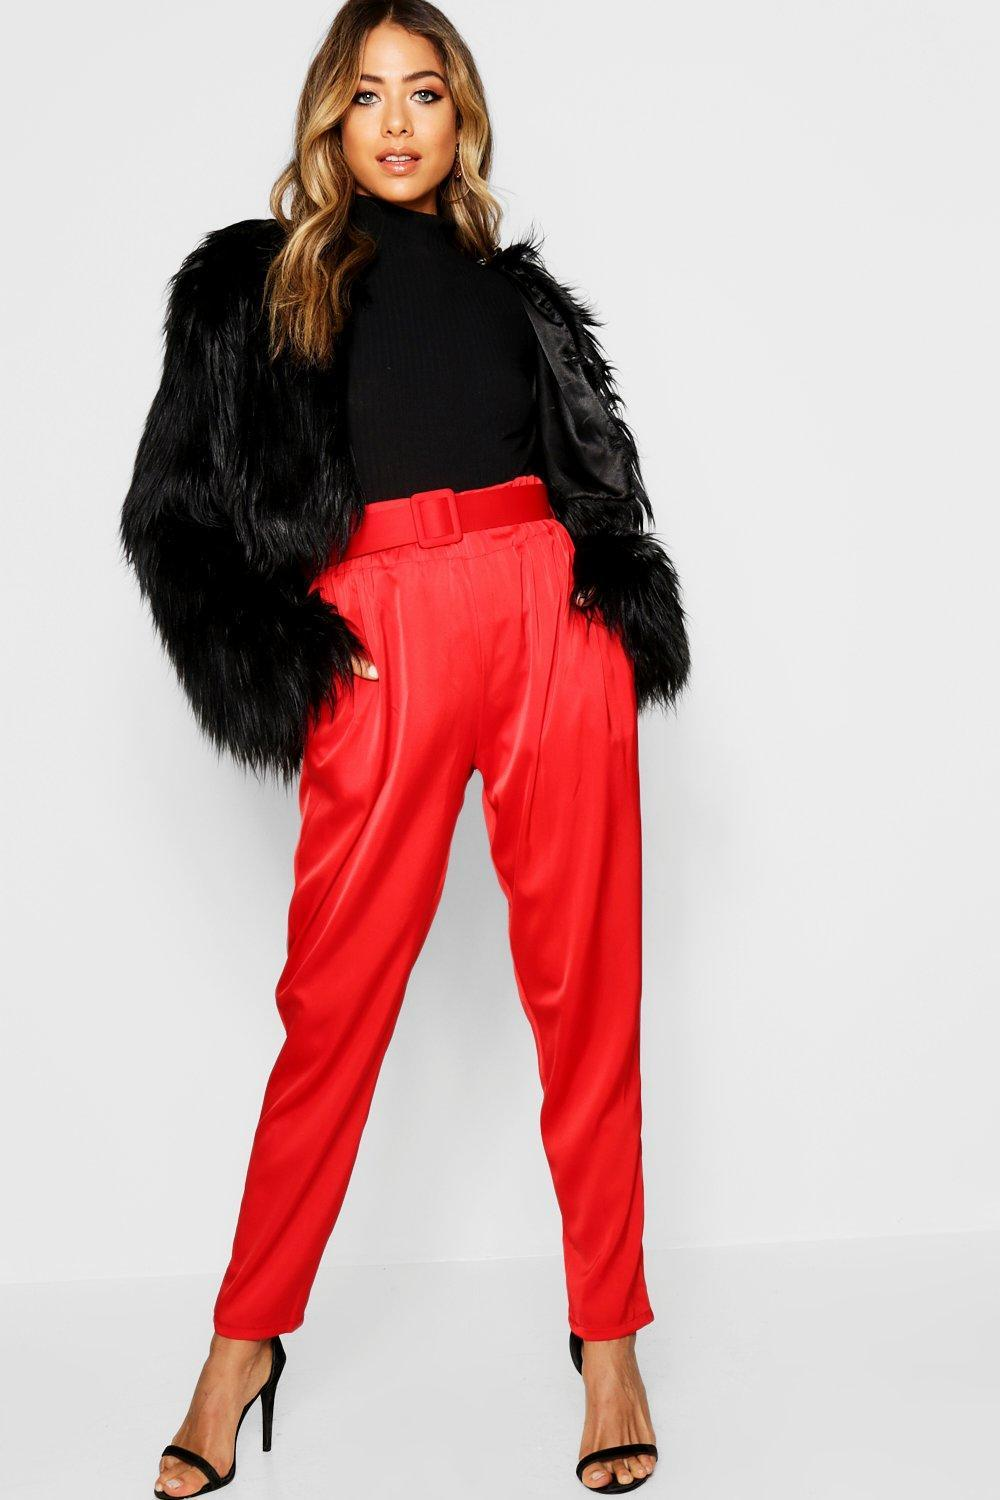 f84e0c1484d9 ... Satin Belted Pants - Lyst. Visit Boohoo. Tap to visit site